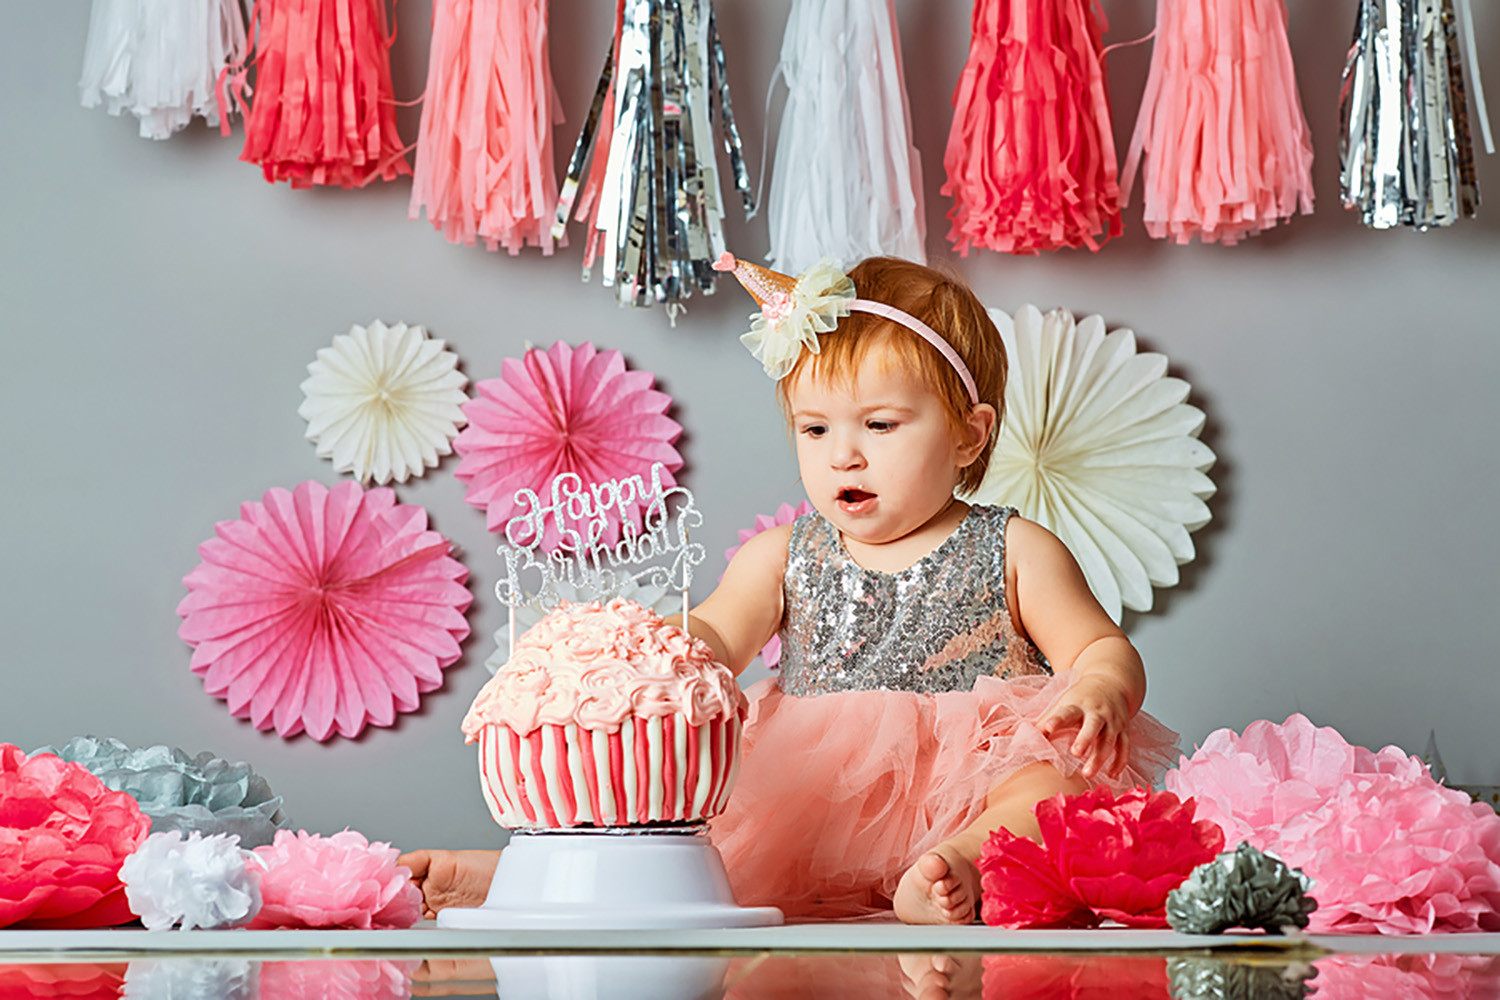 Babys First Birthday Gift Ideas  Baby s 1st Birthday Gifts & Party Ideas for Boys & Girls